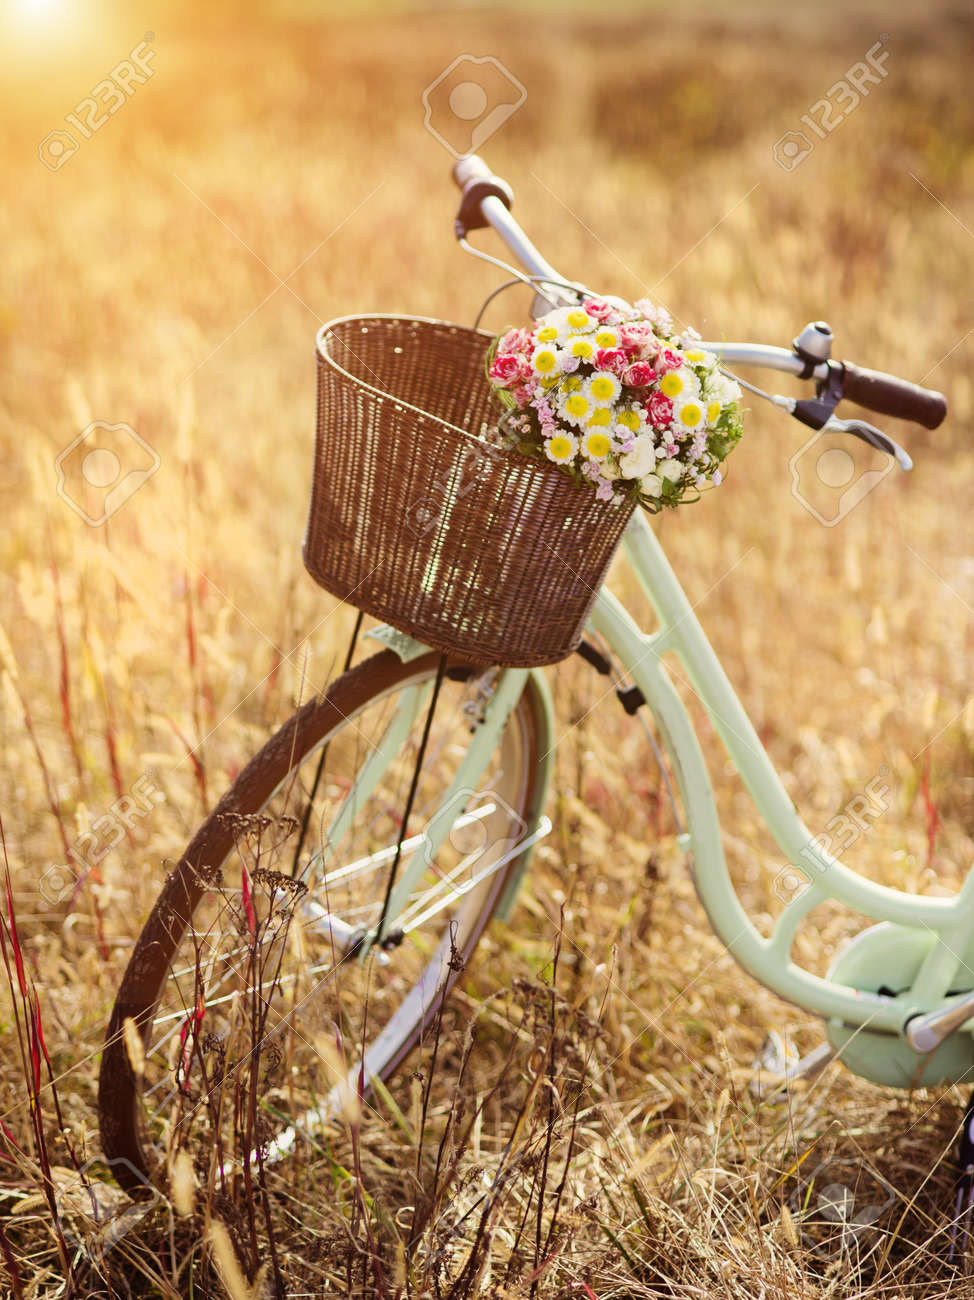 Vintage bicycle with basket full of flowers standing in the field - 38163154